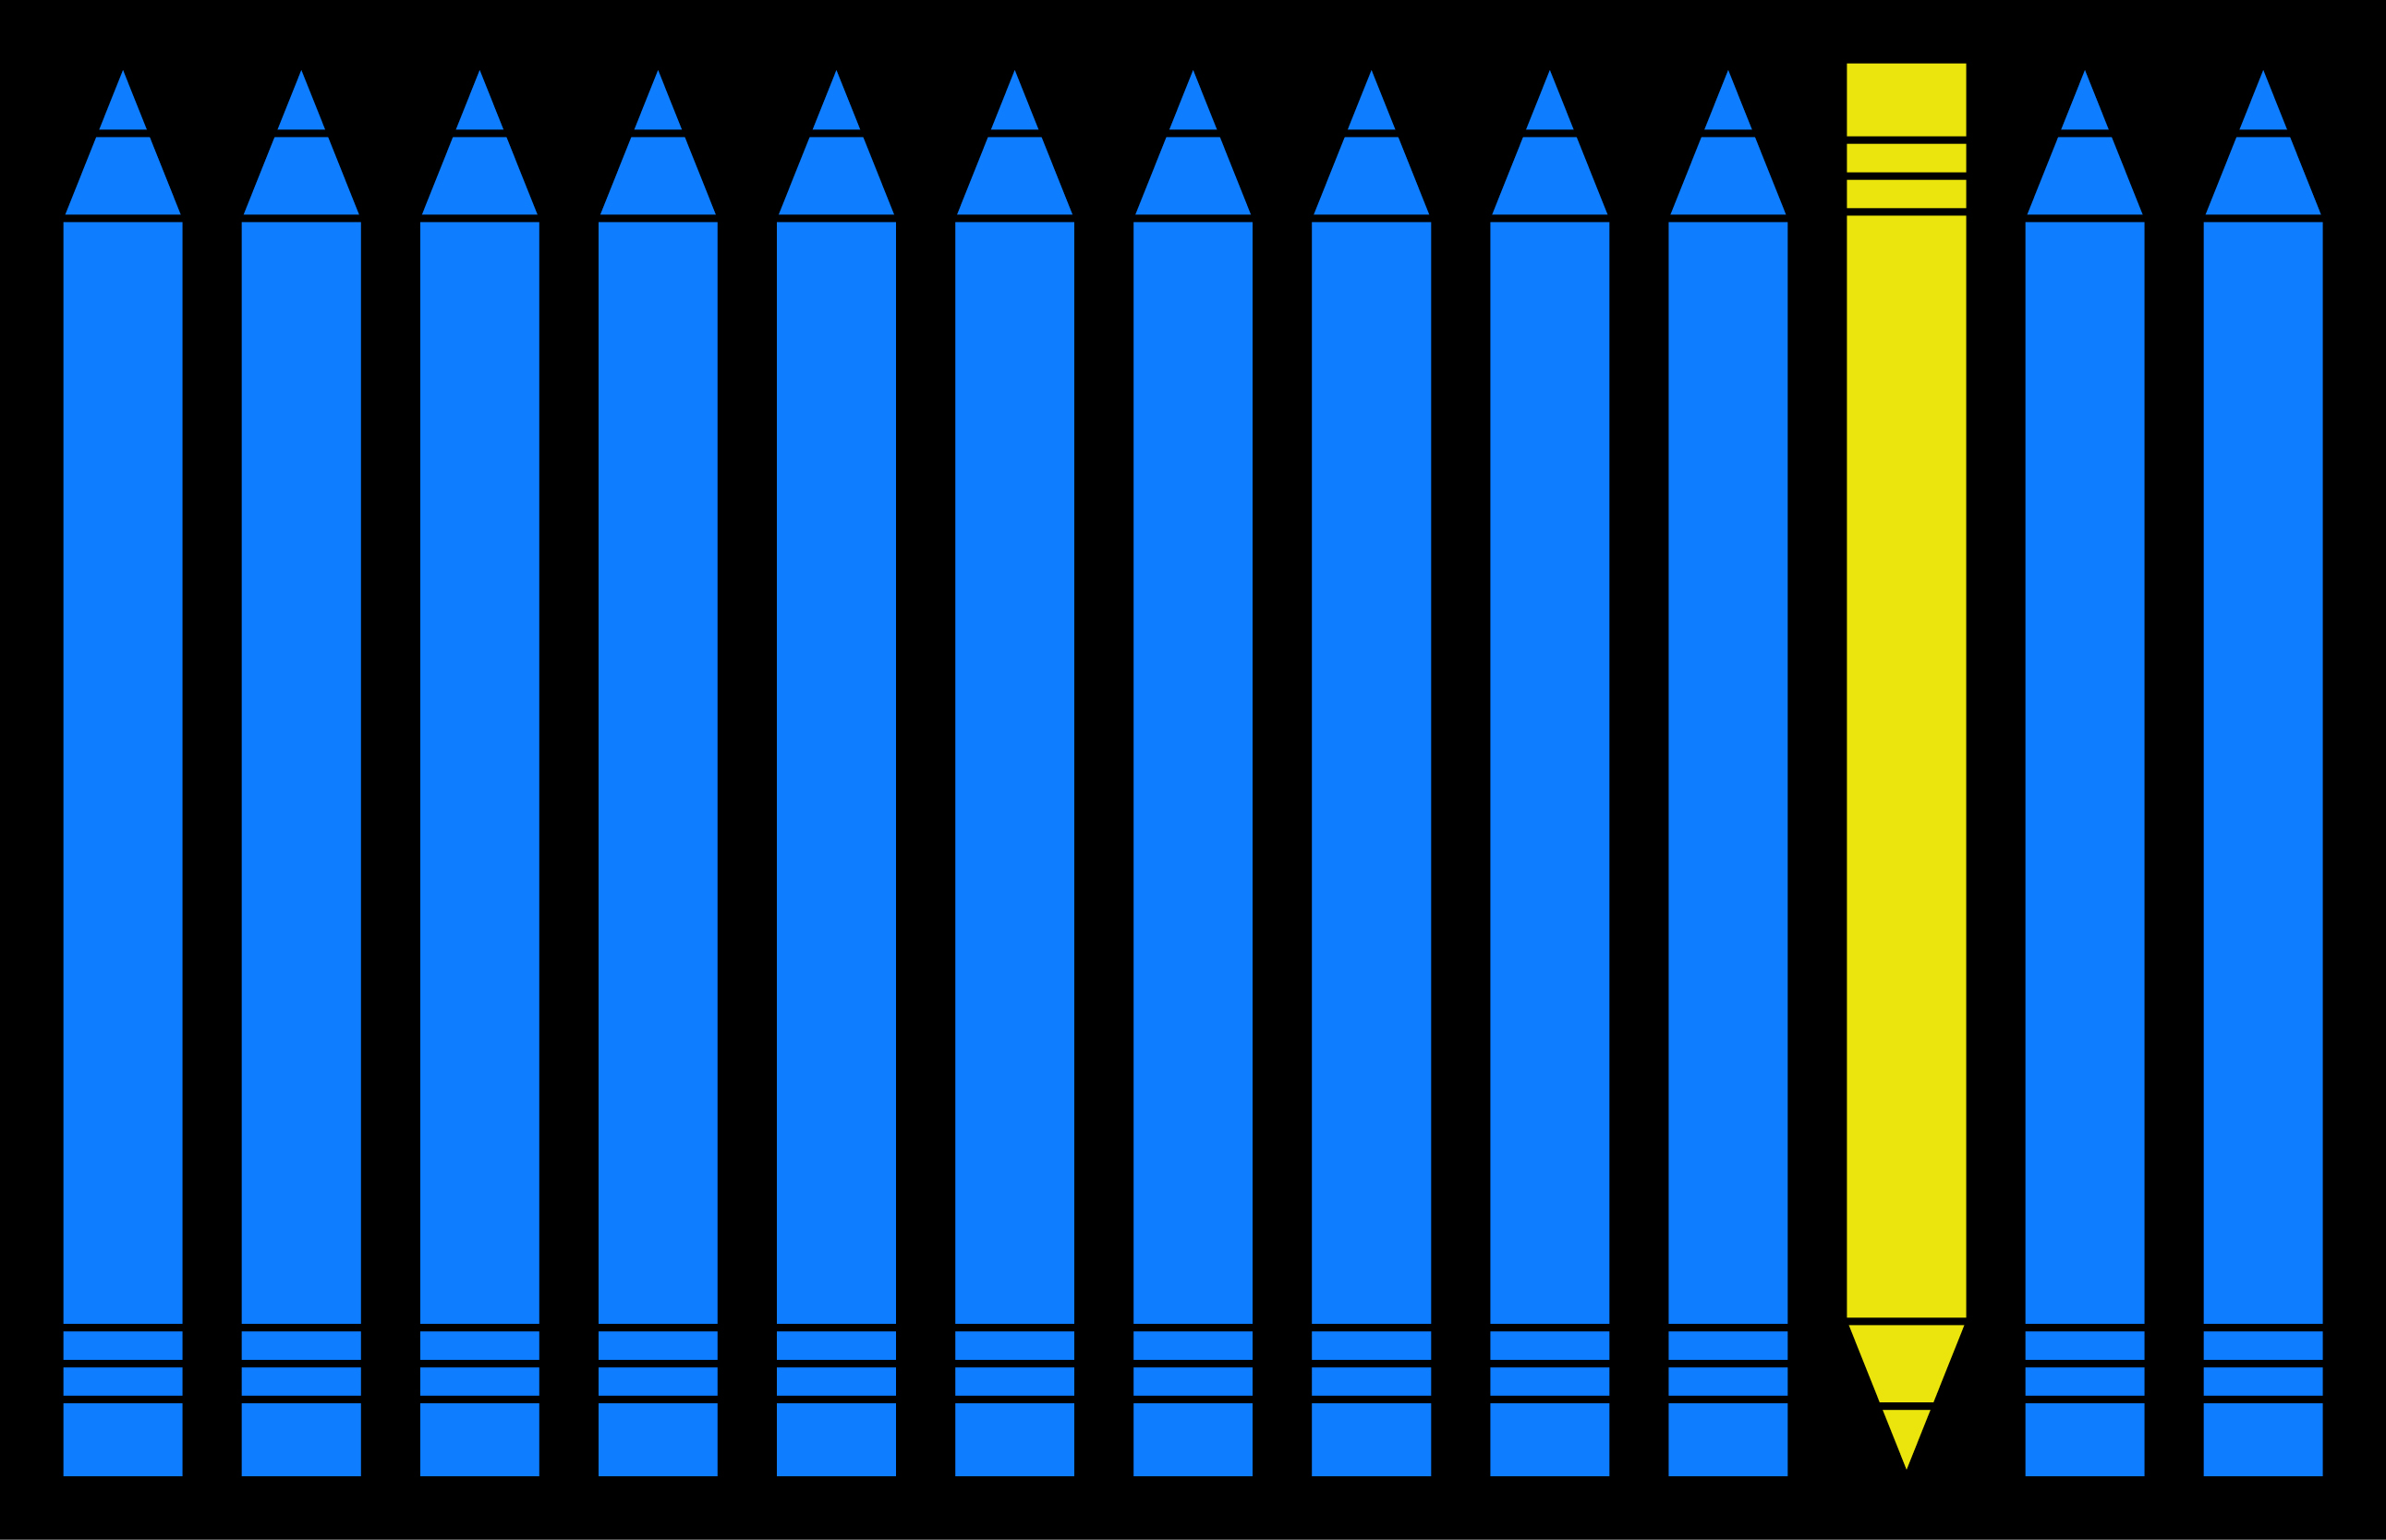 blue pencils with one yellow pencil